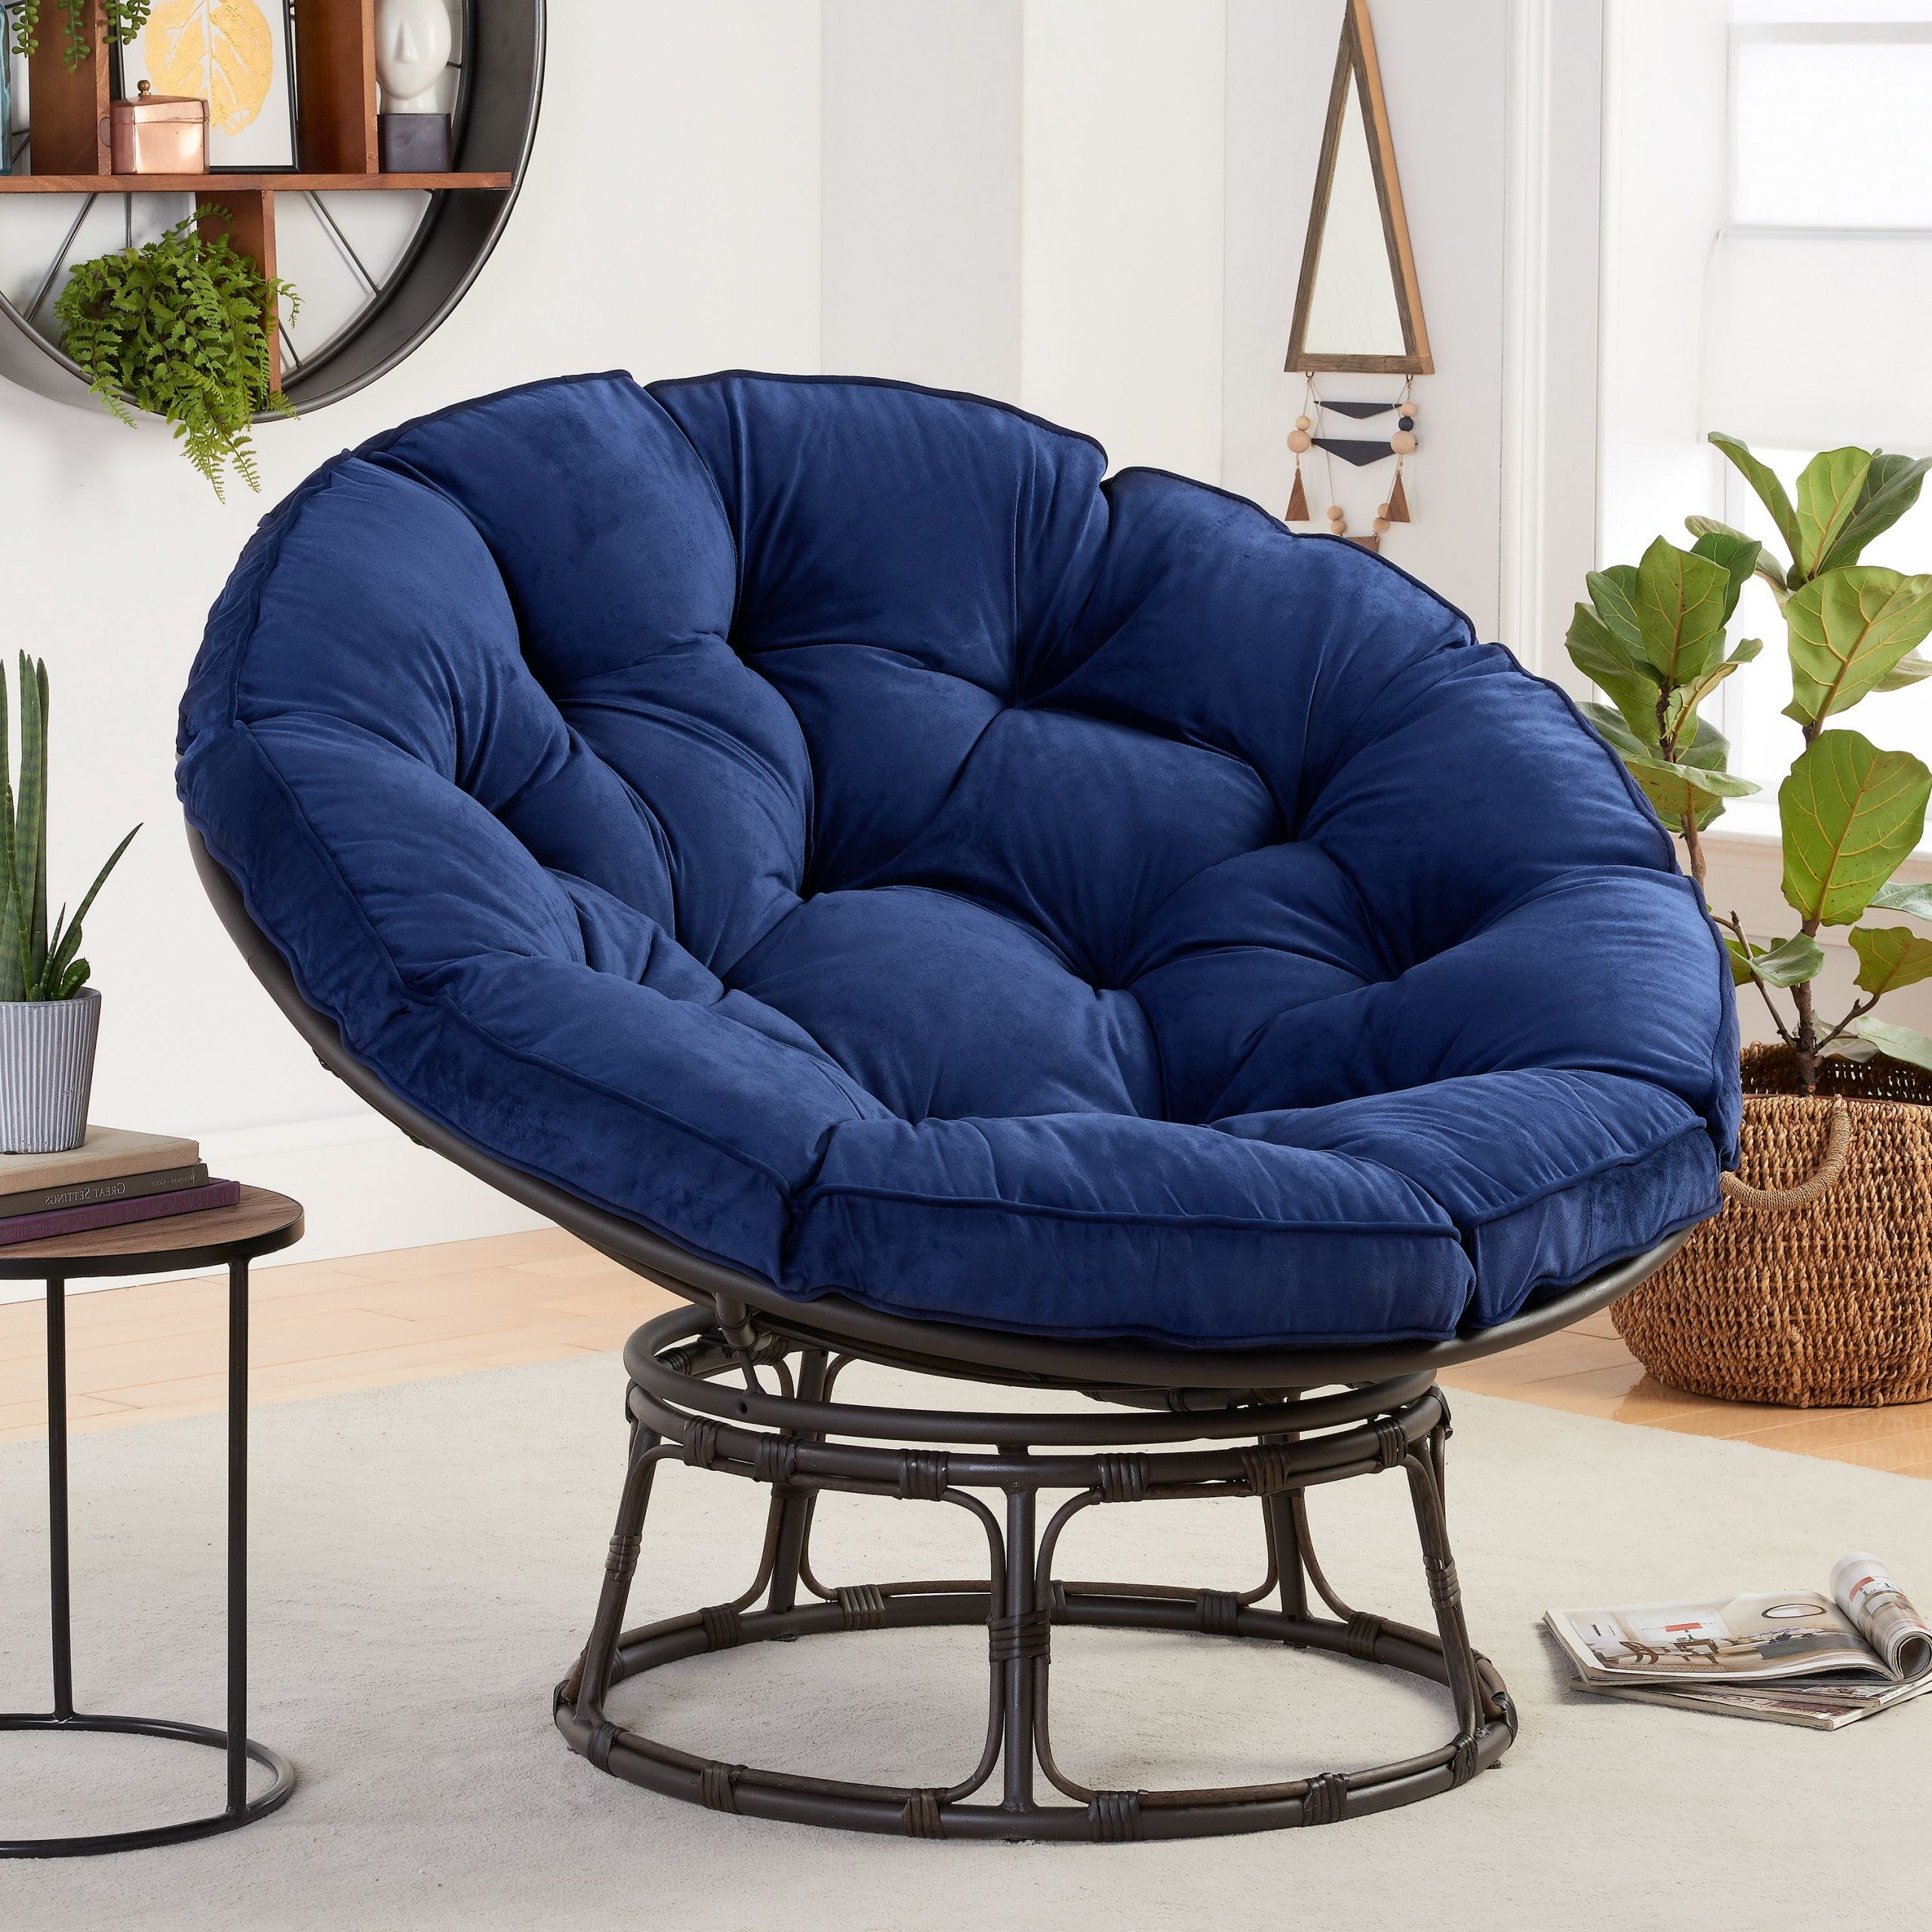 Most Recent Decker Papasan Chairs Inside Better Homes & Gardens Papasan Chair With Fabric Cushion, Navy – Walmart (View 7 of 20)